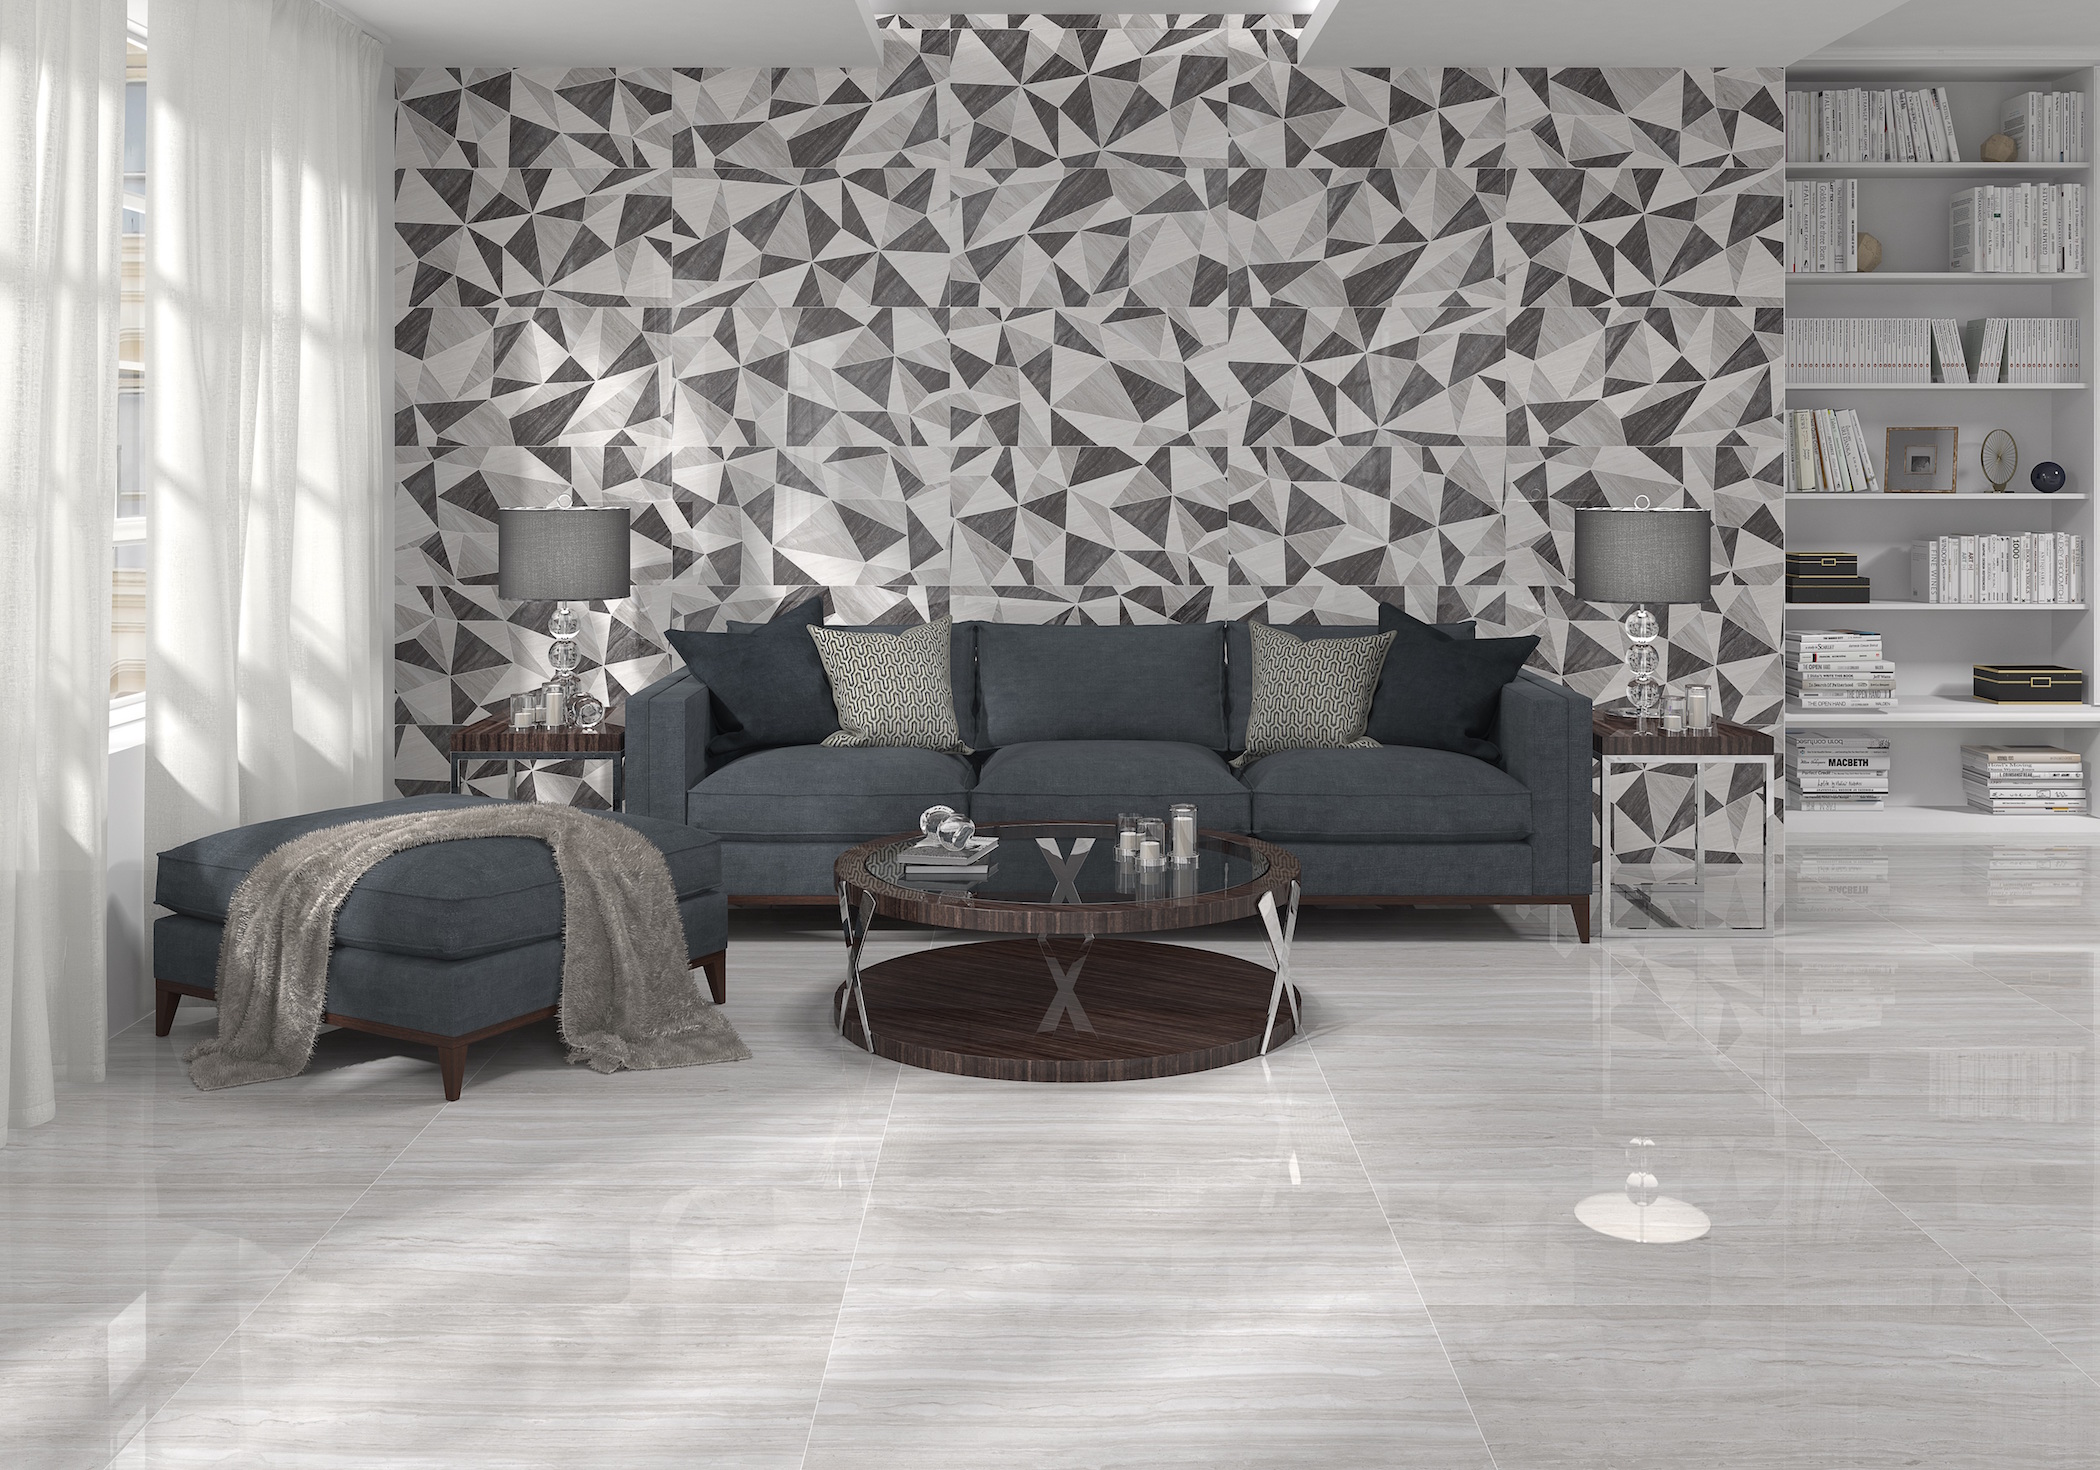 Estudio ceramico for Ceracasa tile usa